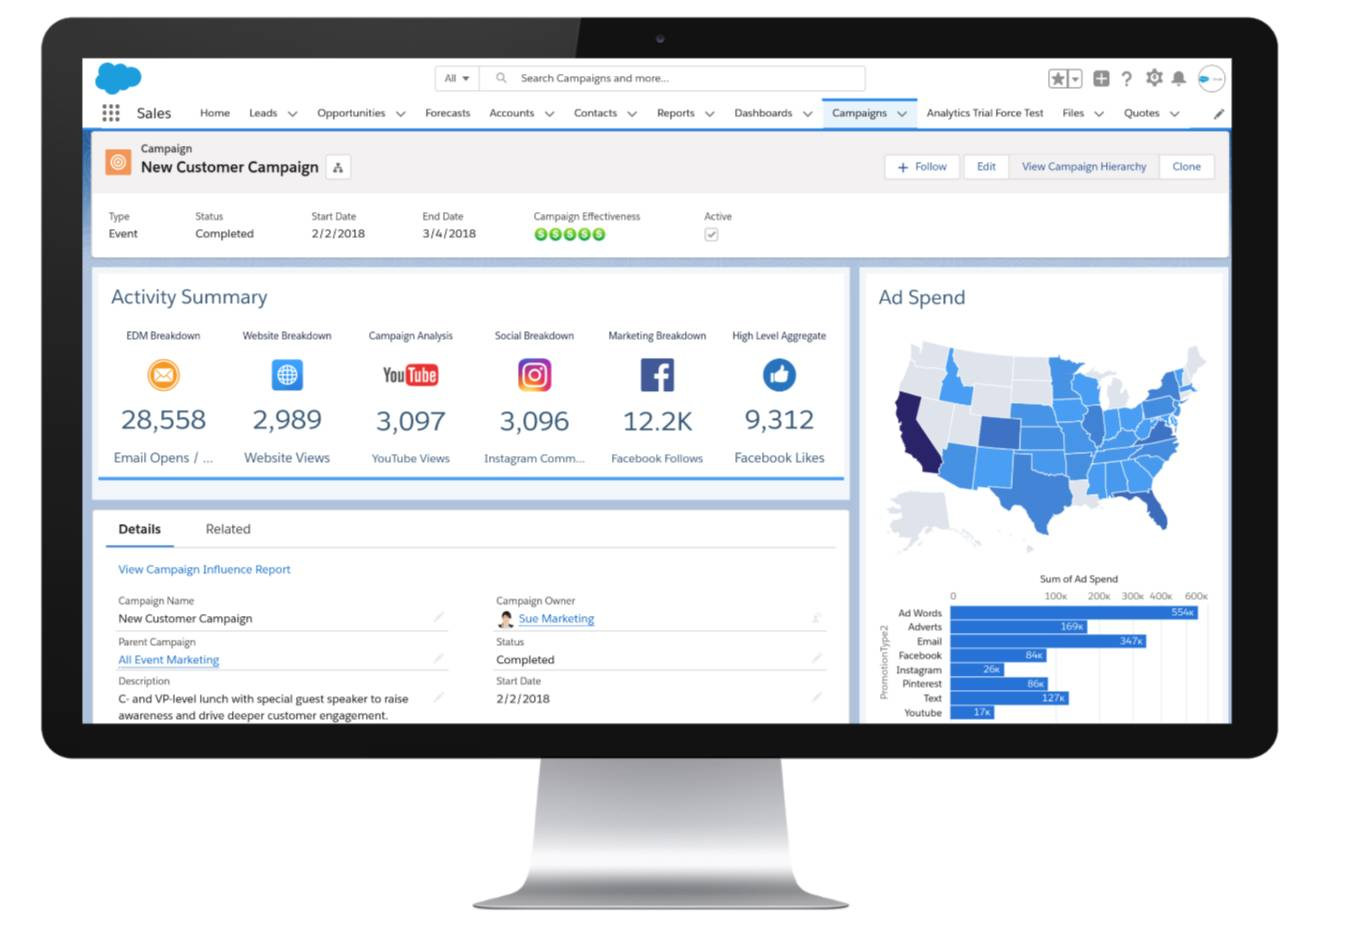 Executive Launch Event dashboard from Einstein Analytics pulled into the Campaign object in Salesforce.